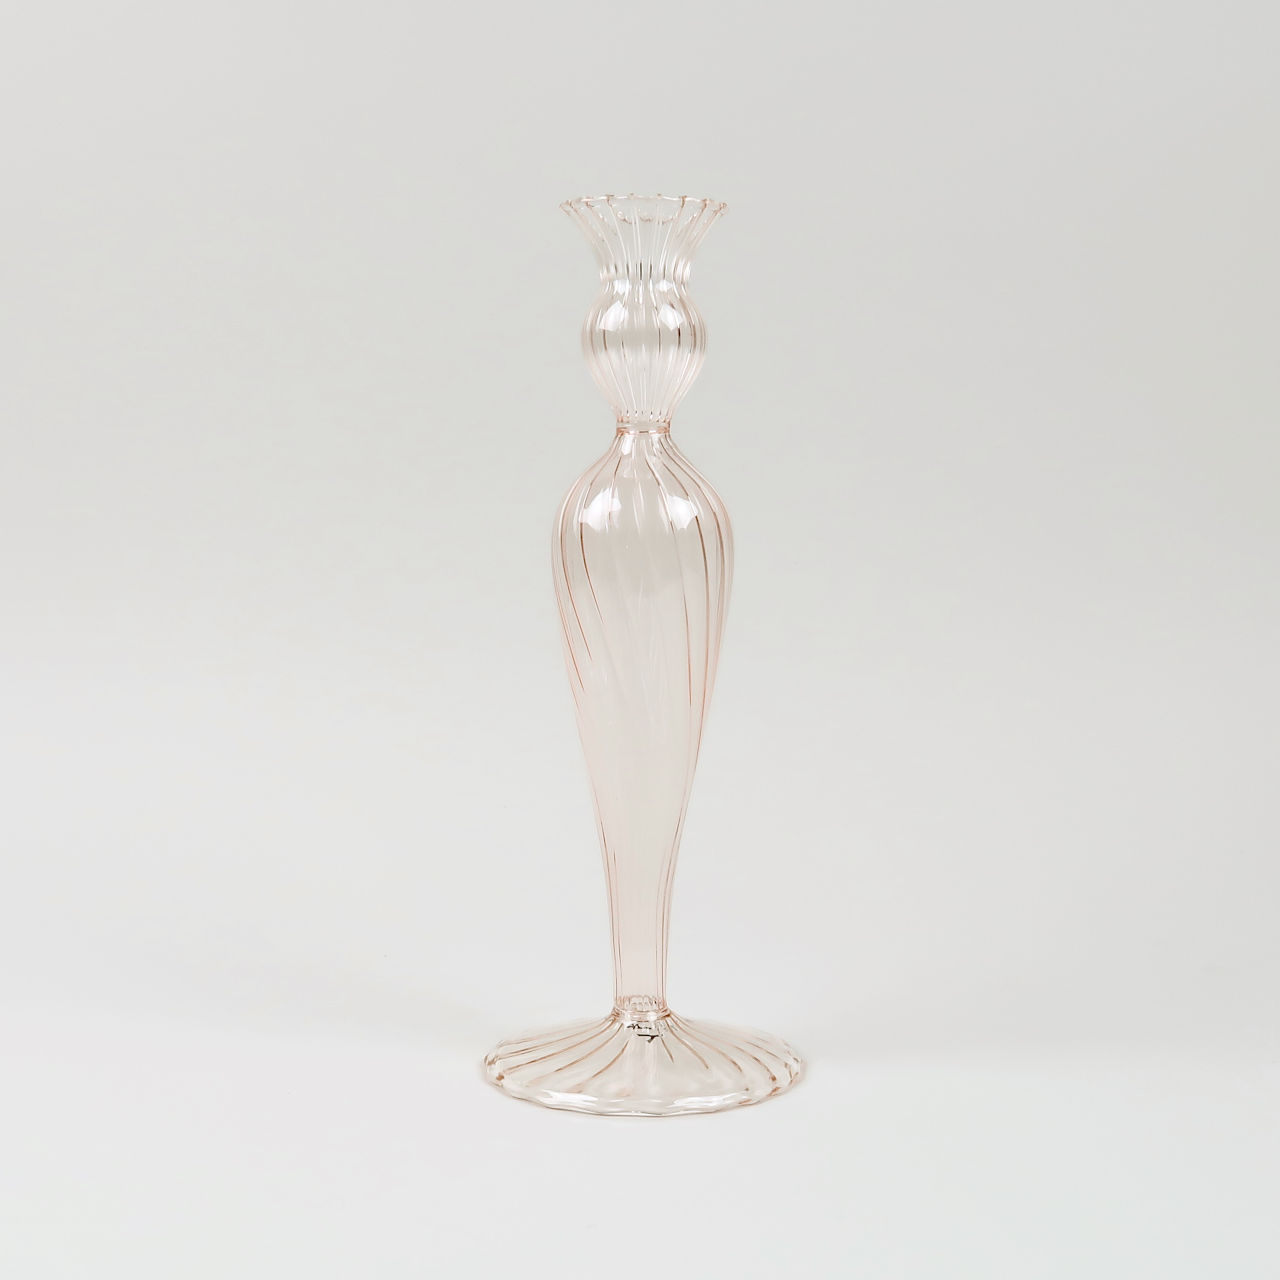 Venezian Glass Candle Holder - 2